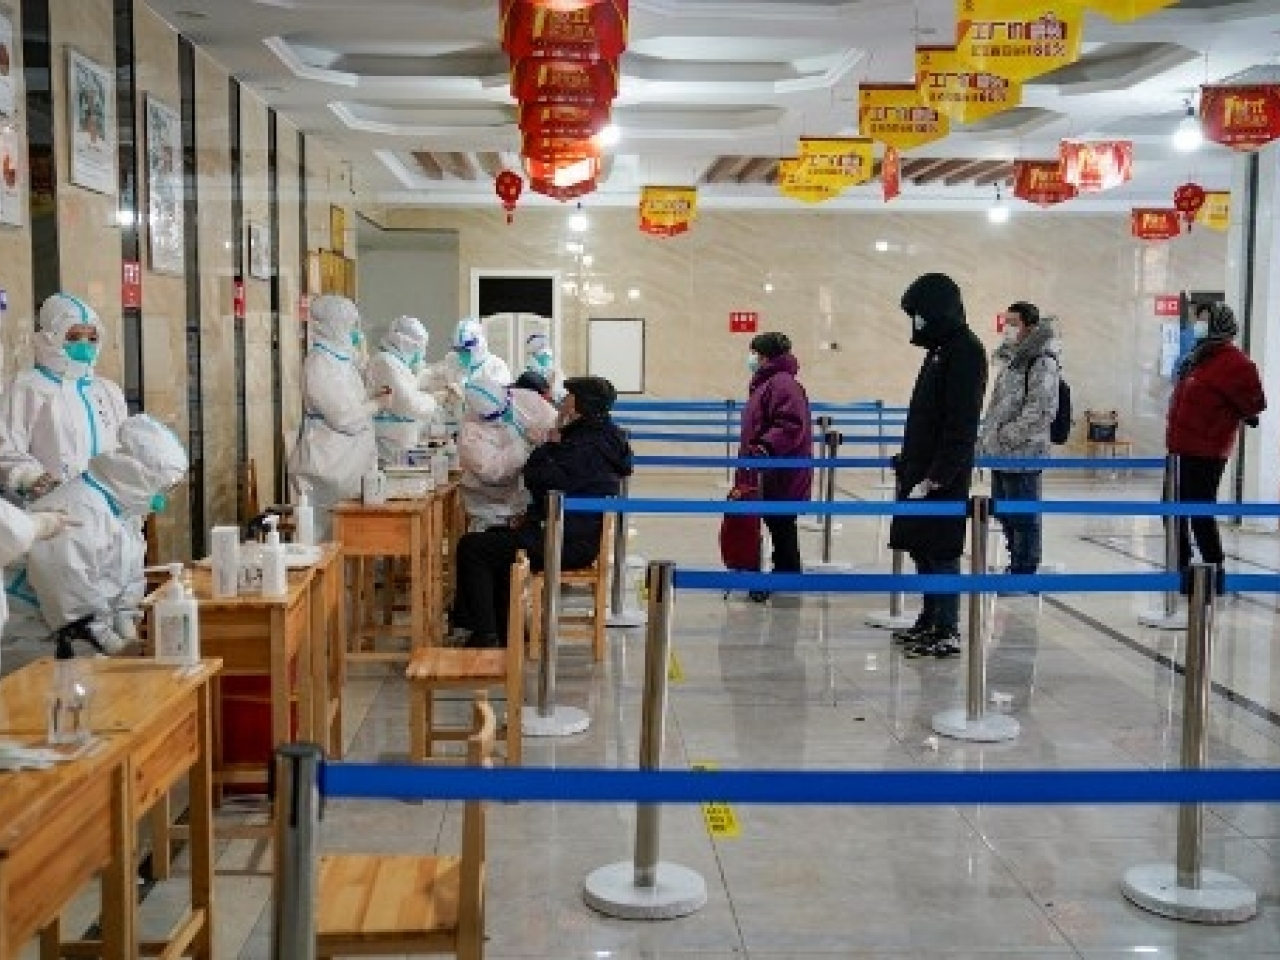 A medical worker takes a swab sample from a man to test for Covid-19 coronavirus at an office building in Harbin. Photo: AFP